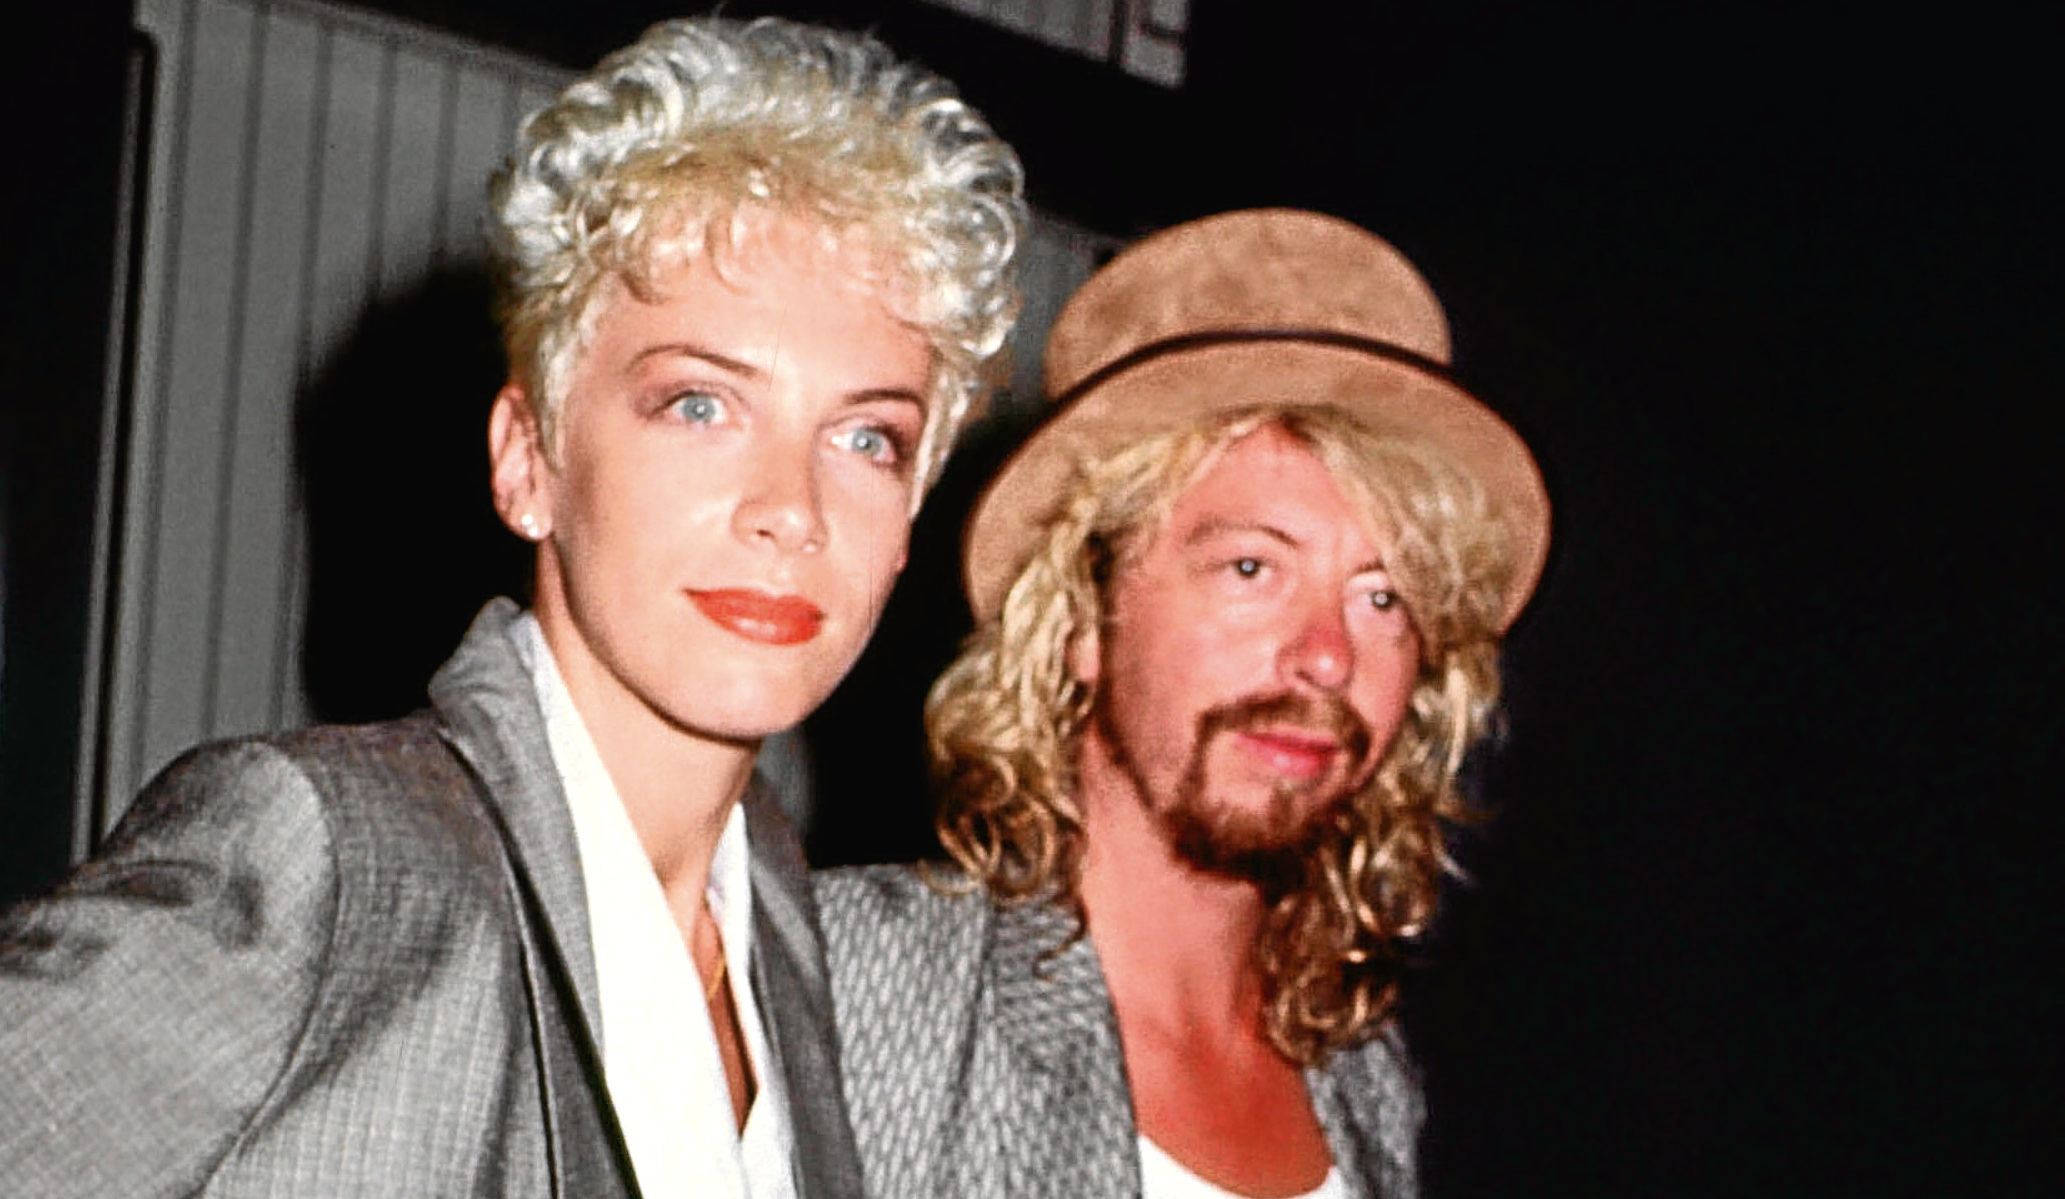 Annie Lennox and Dave Stewart of the Eurythmics in 1986 (Barry King/Alamy)